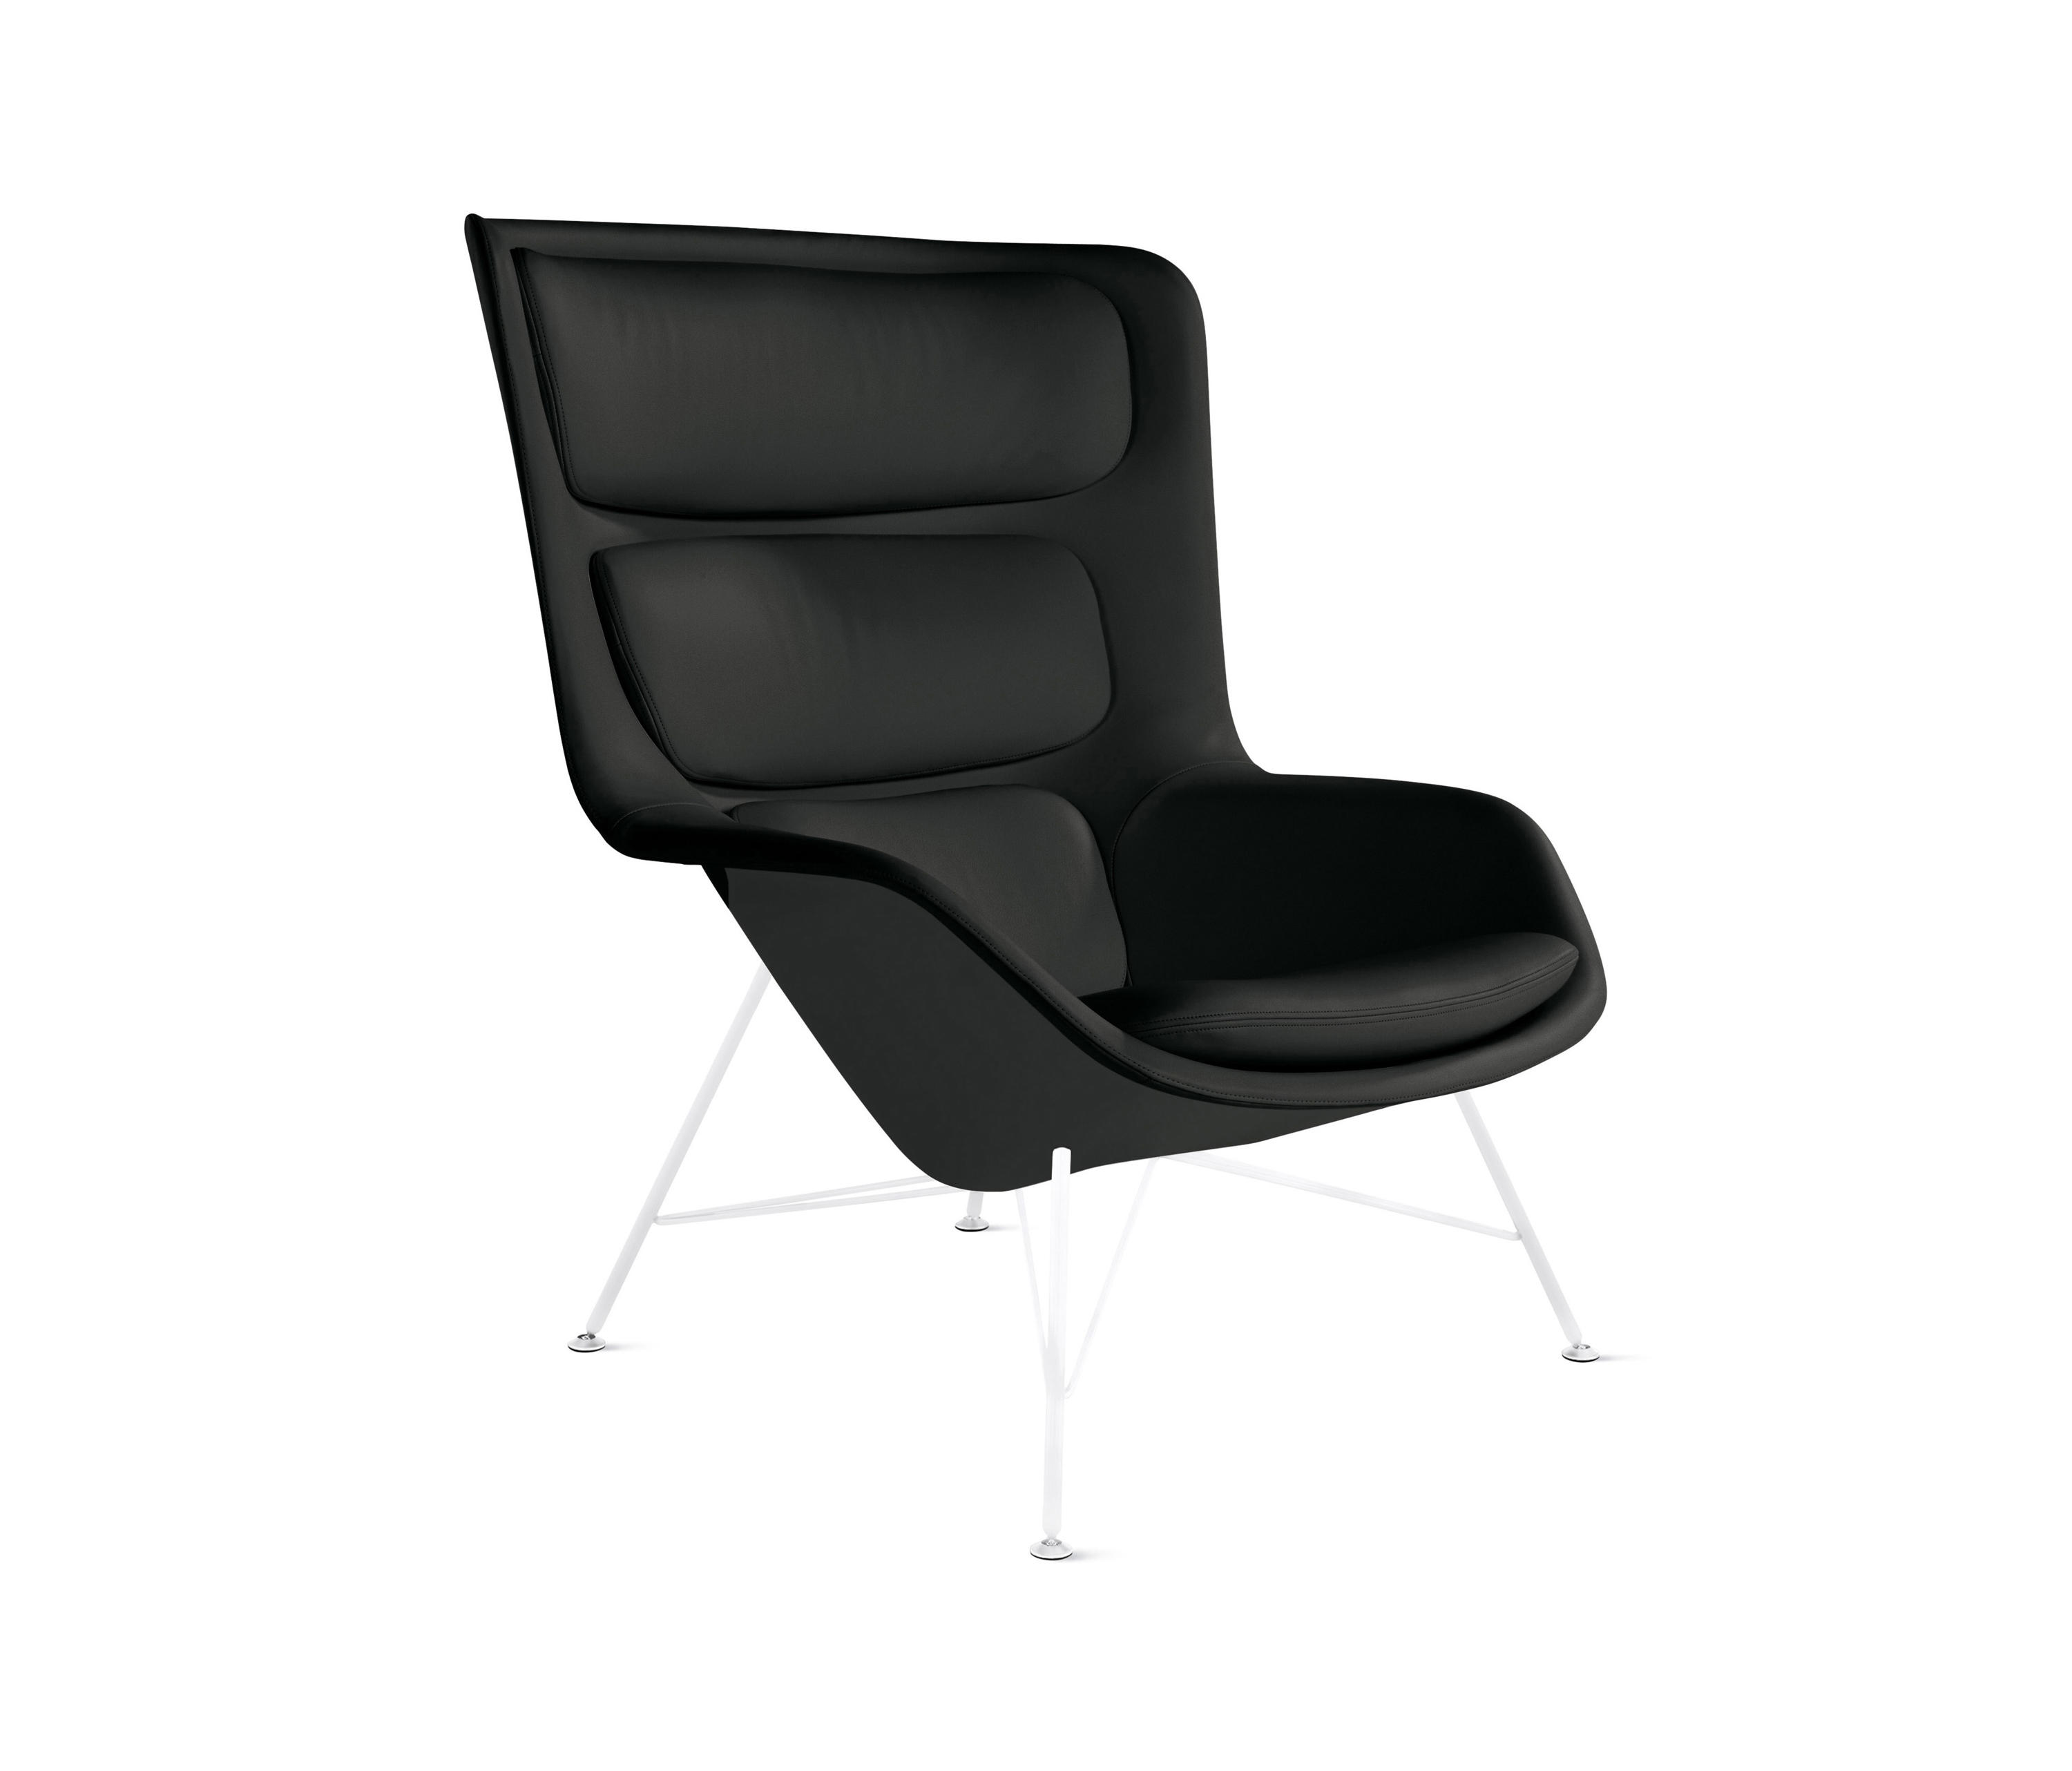 Striad High Back Lounge Chair By Design Within Reach | Armchairs